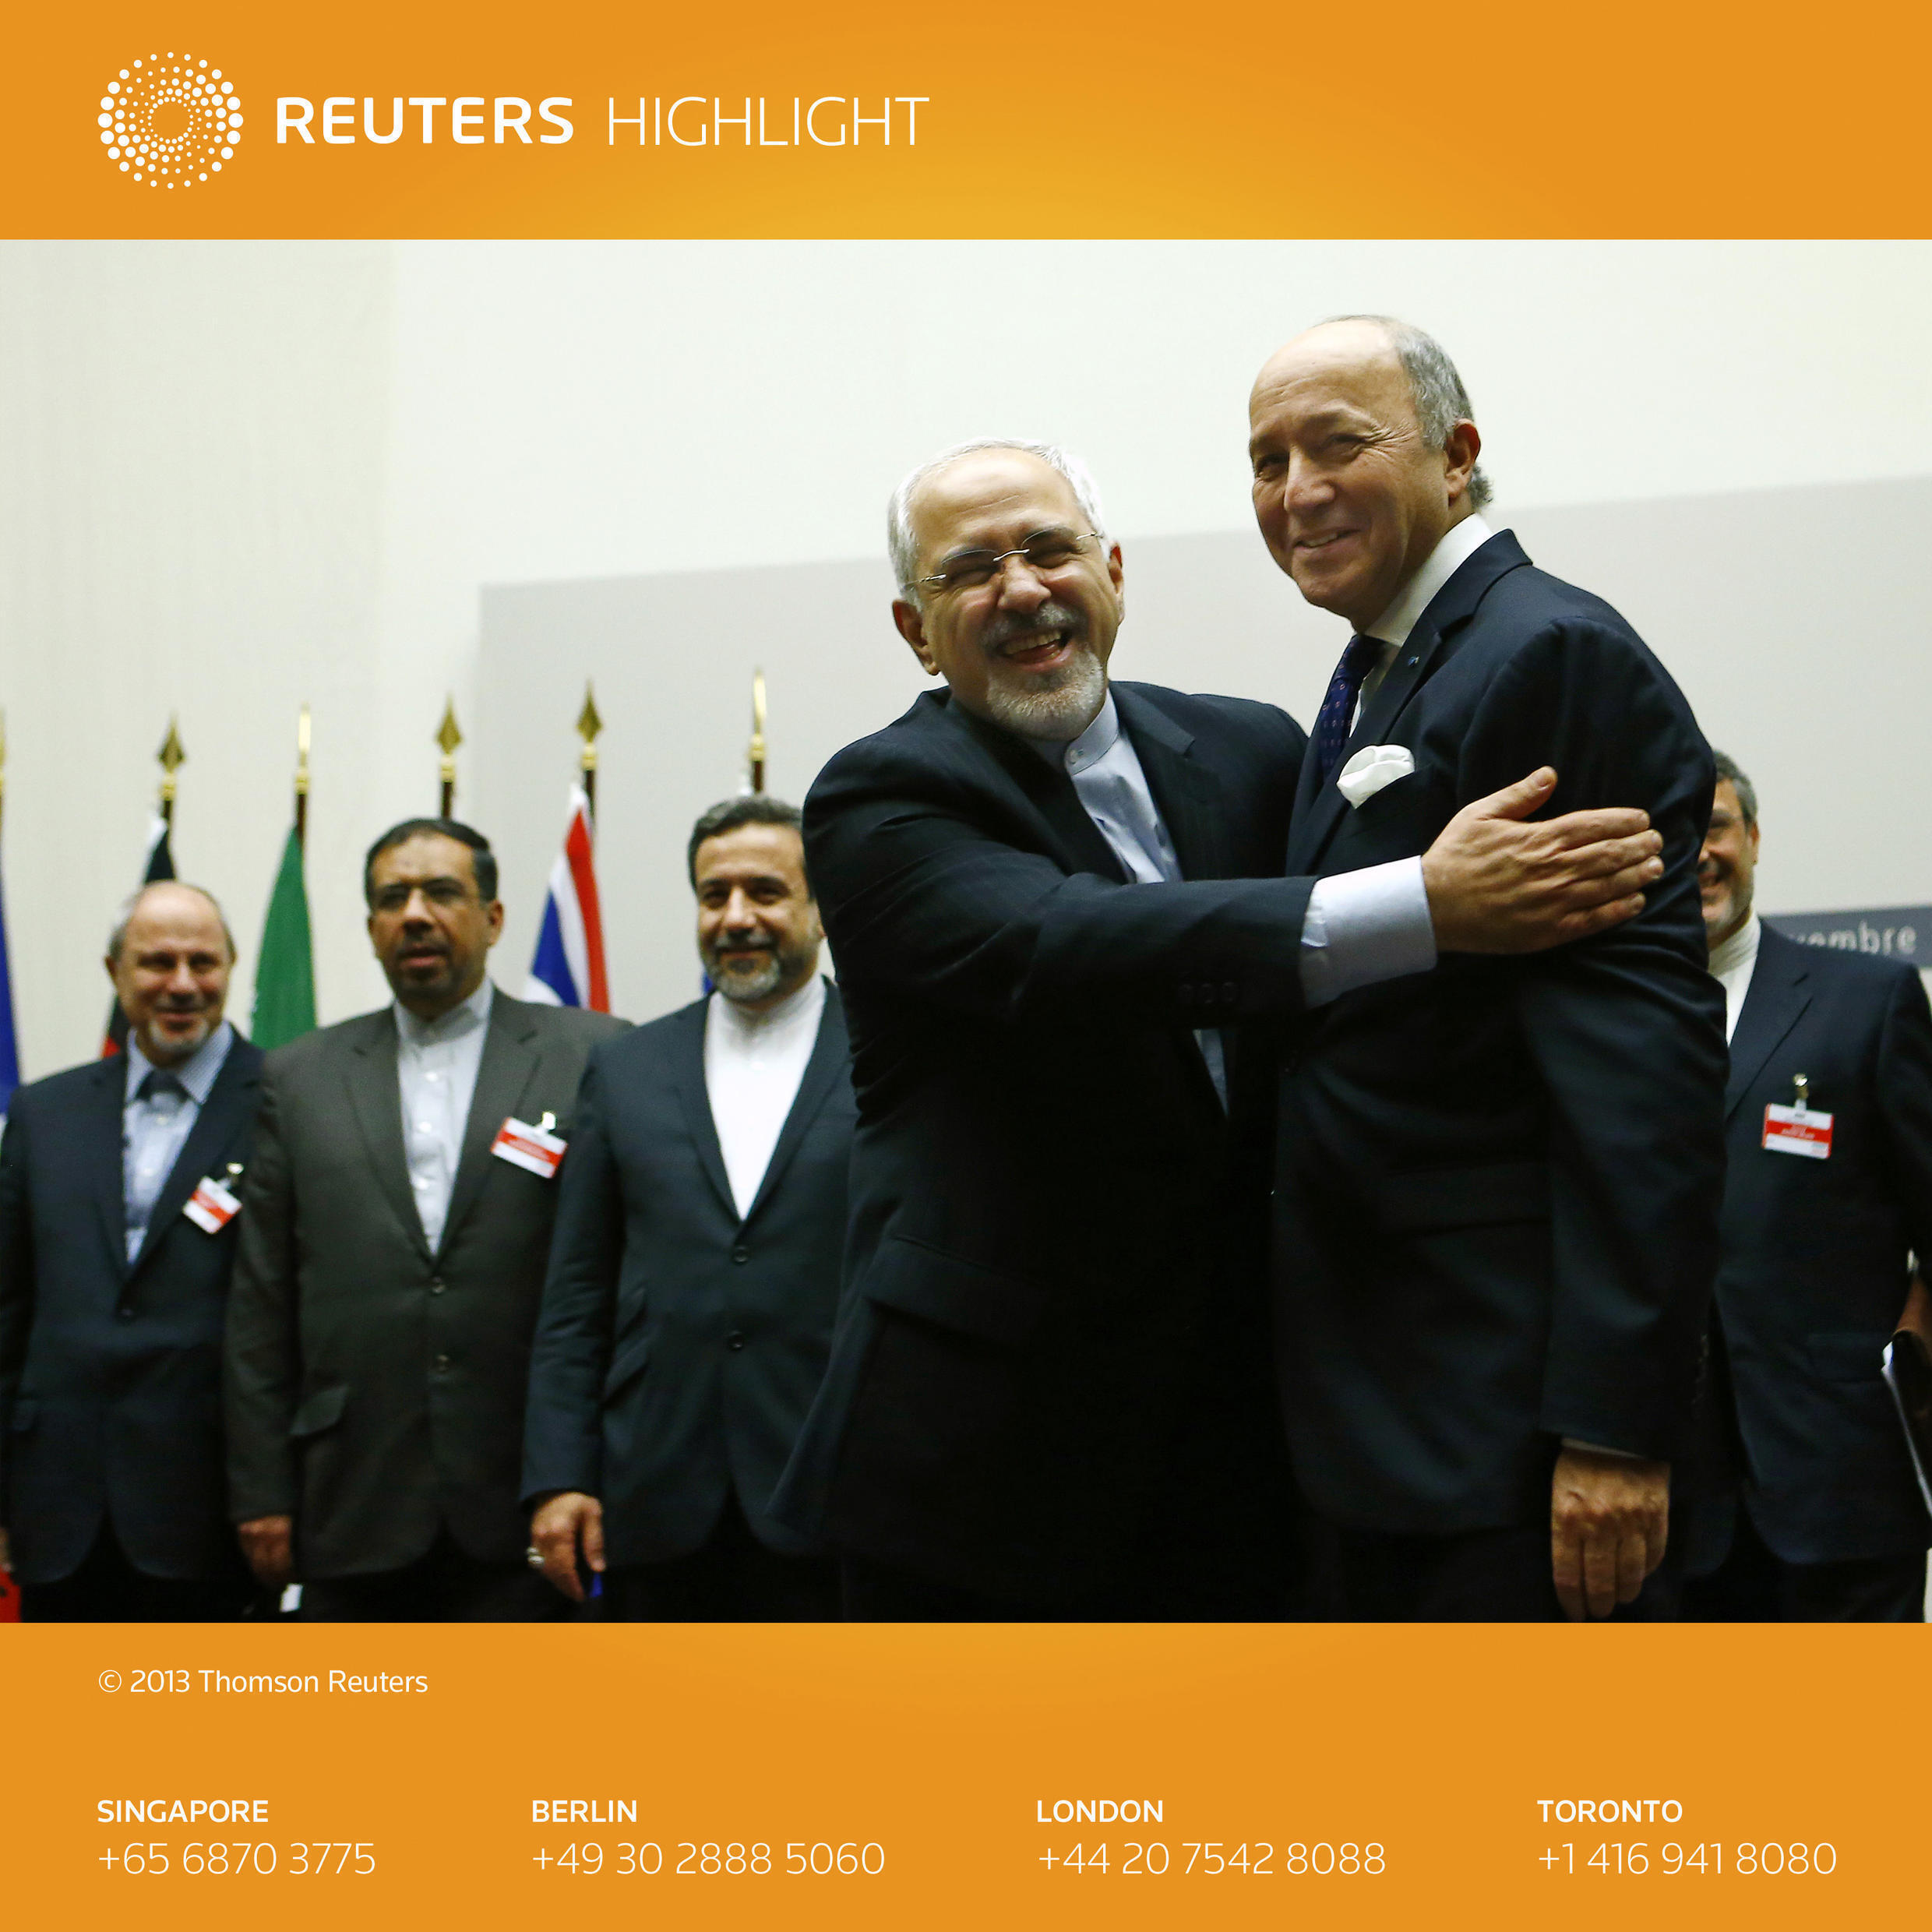 Iranian Foreign Minister Mohammad Javad Zarif hugs French Foreign Minister Laurent Fabius after a ceremony at the United Nations in Geneva